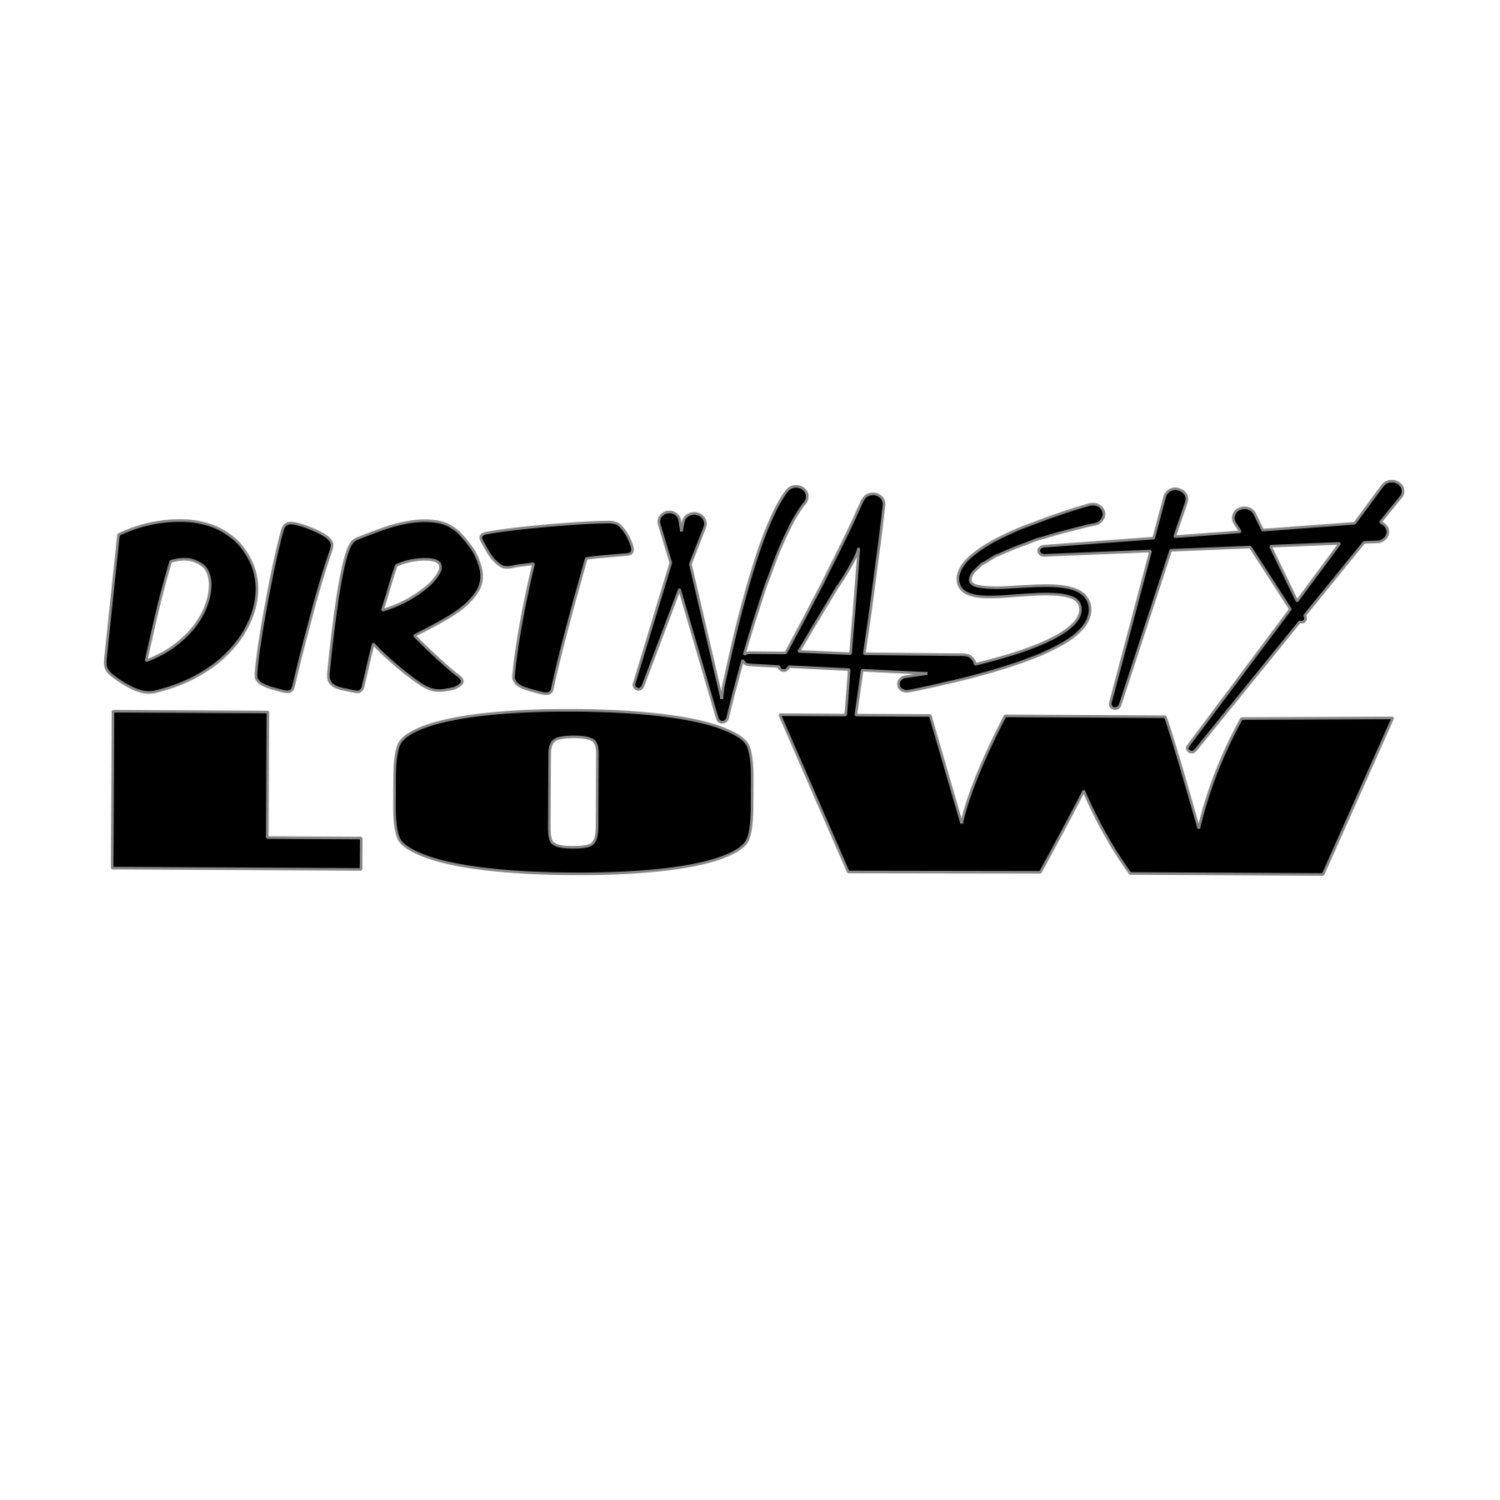 Dirt nasty low vinyl decal any color any size car decal jdm vinyl decals stance funny stickers car stickers tuner stickers